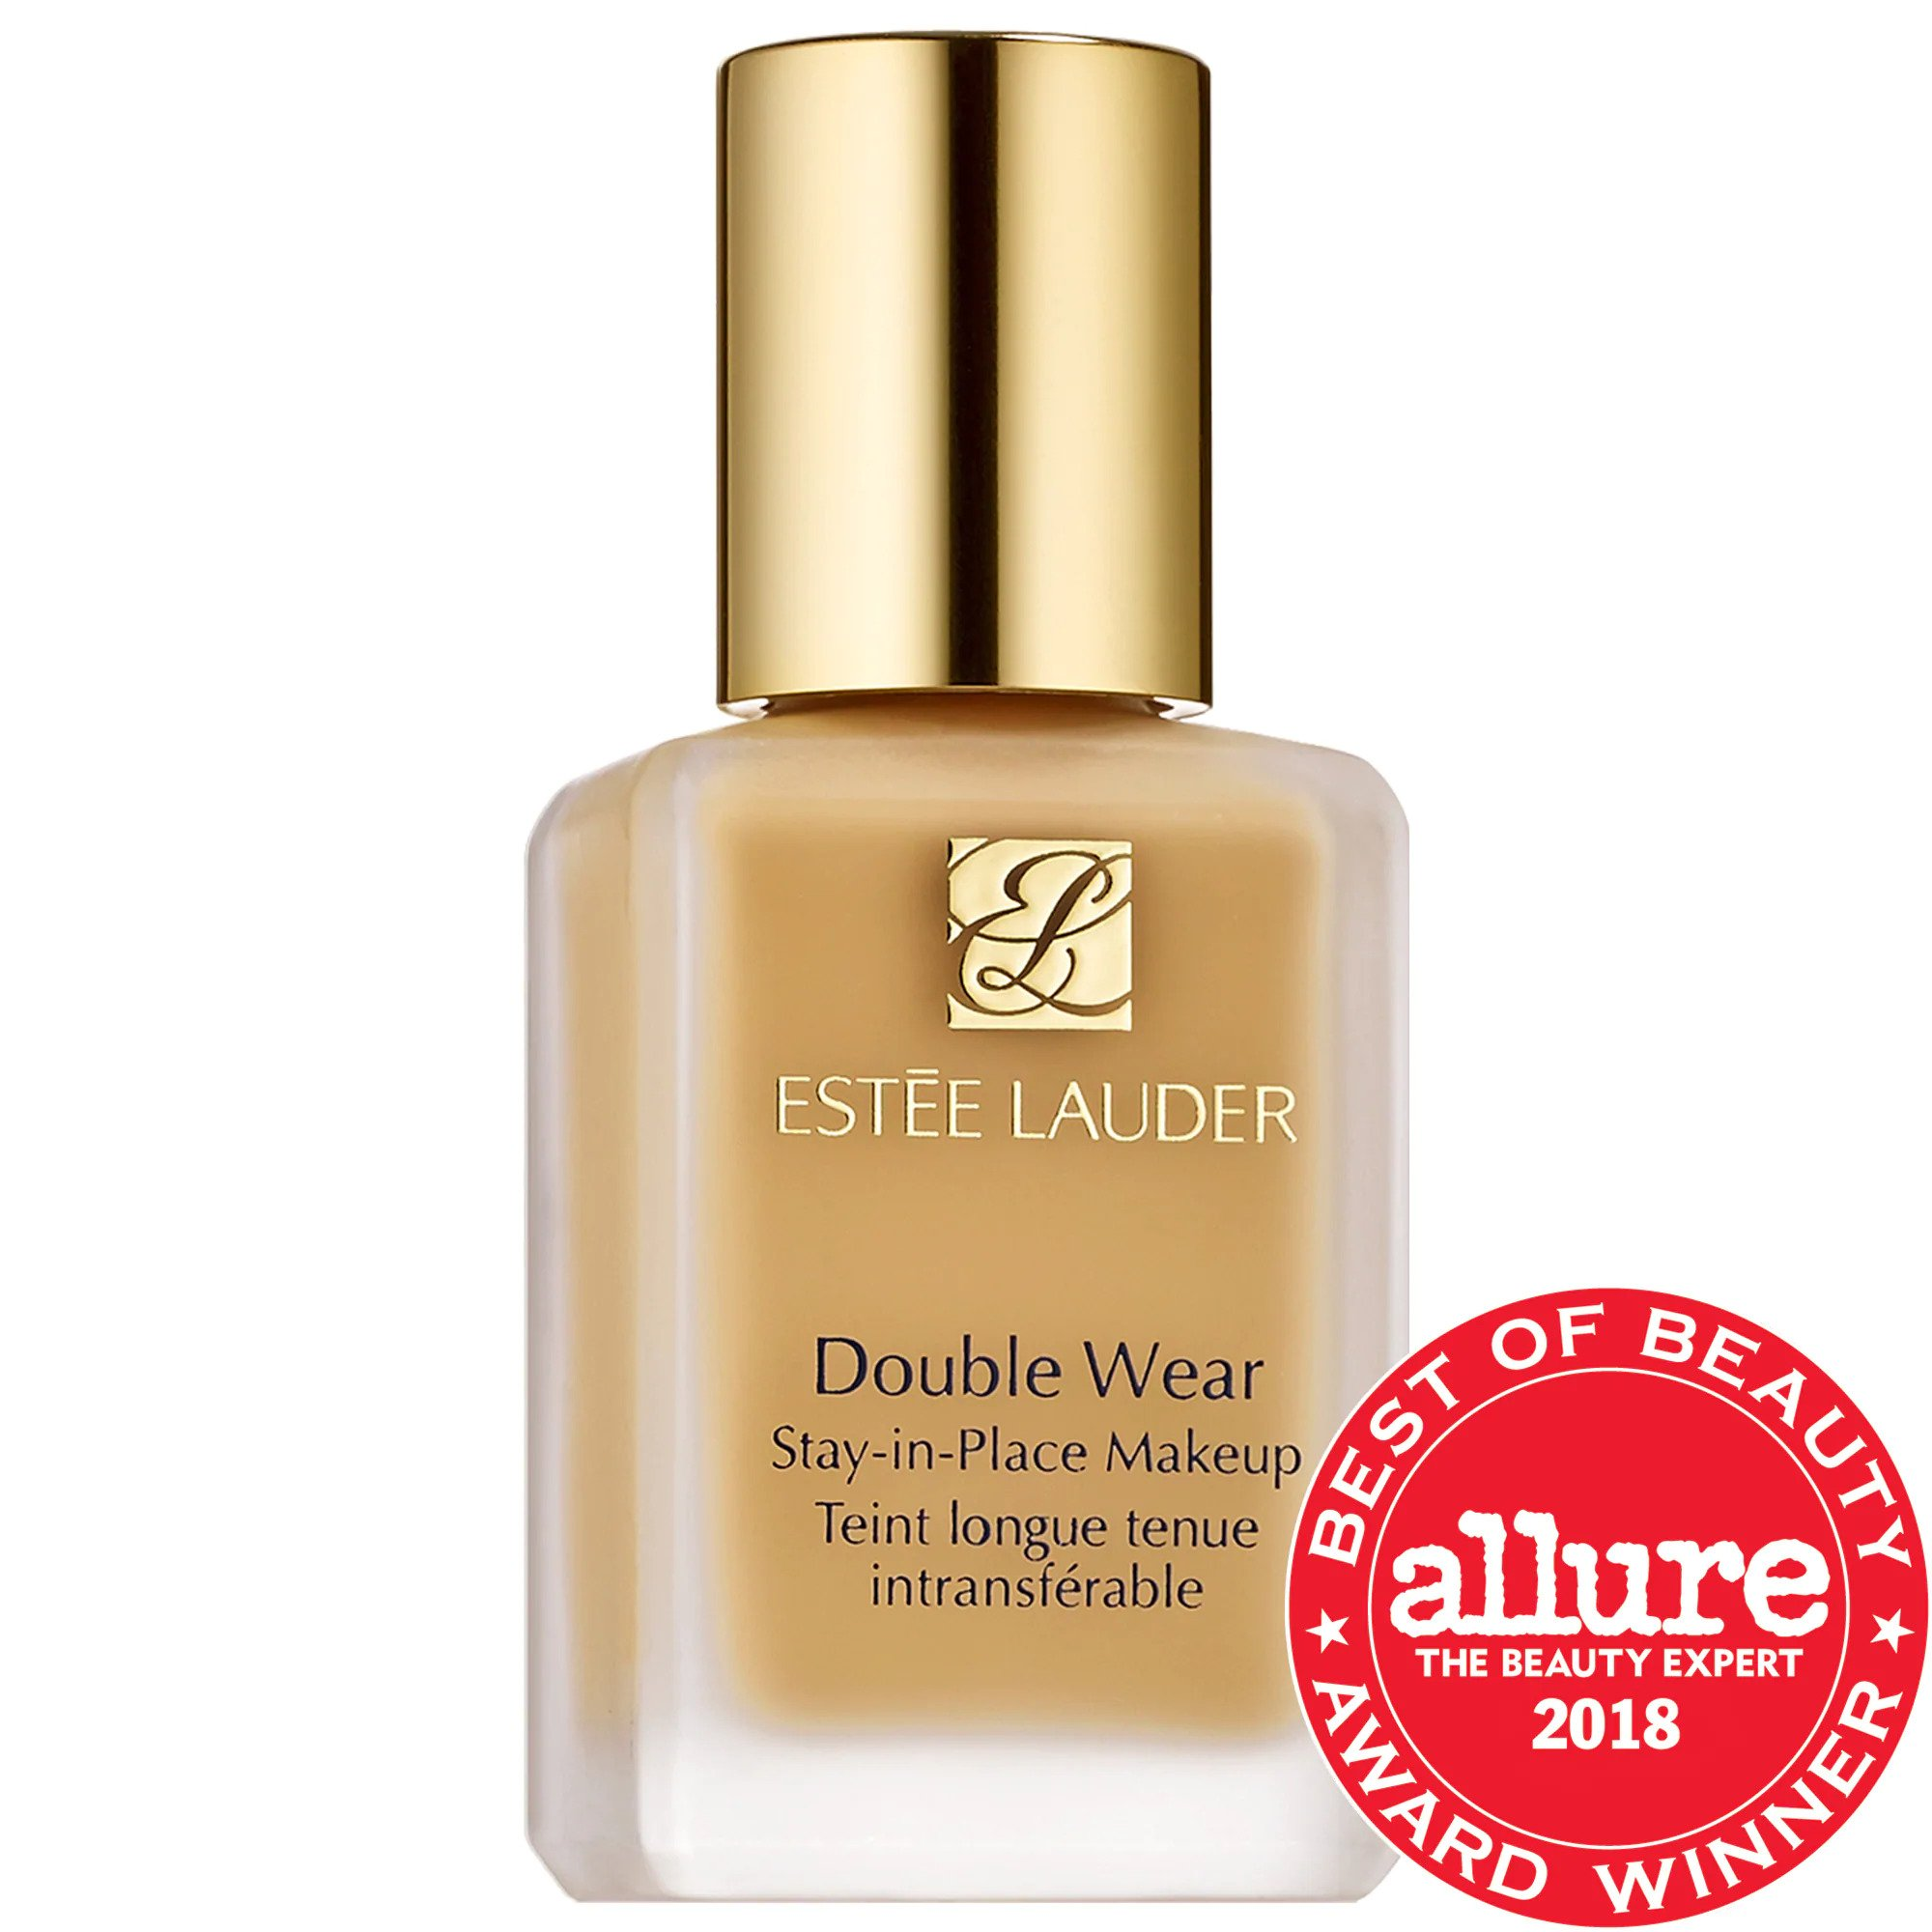 Estee Lauder 2W2 Double Wear Stay-in-Place Foundation Dupes